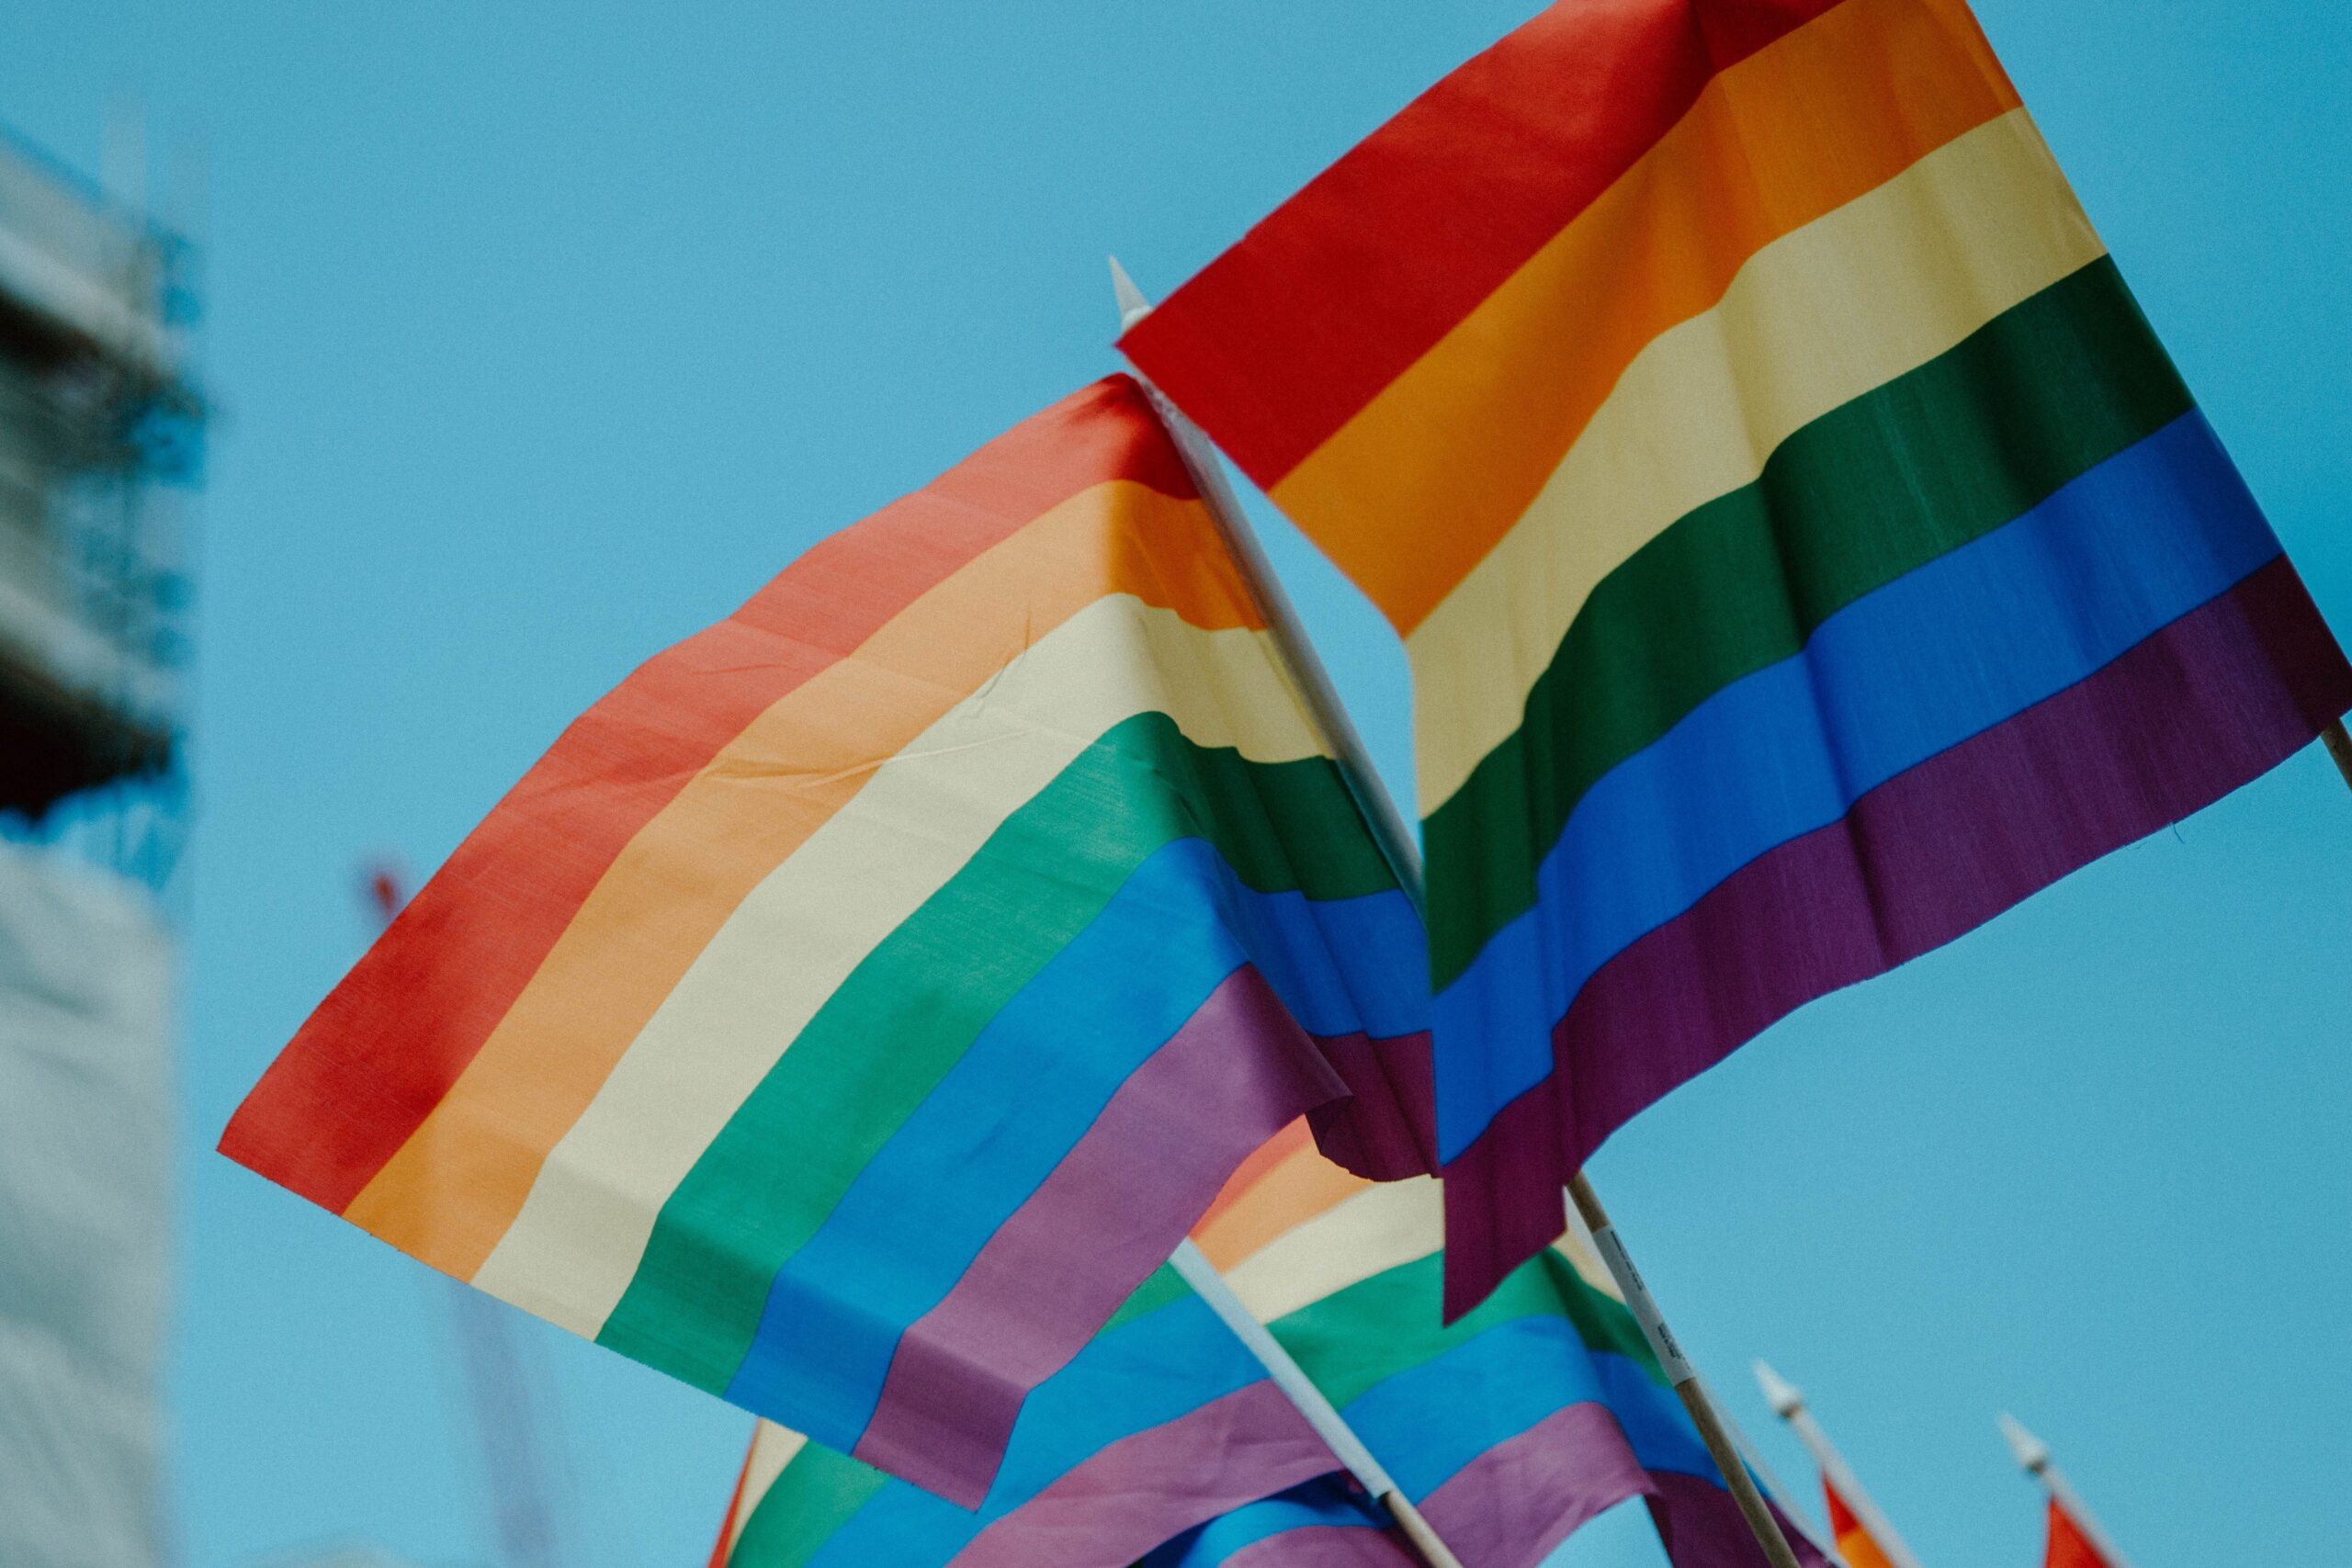 Photo of lgbt rainbow flags against a blue sky